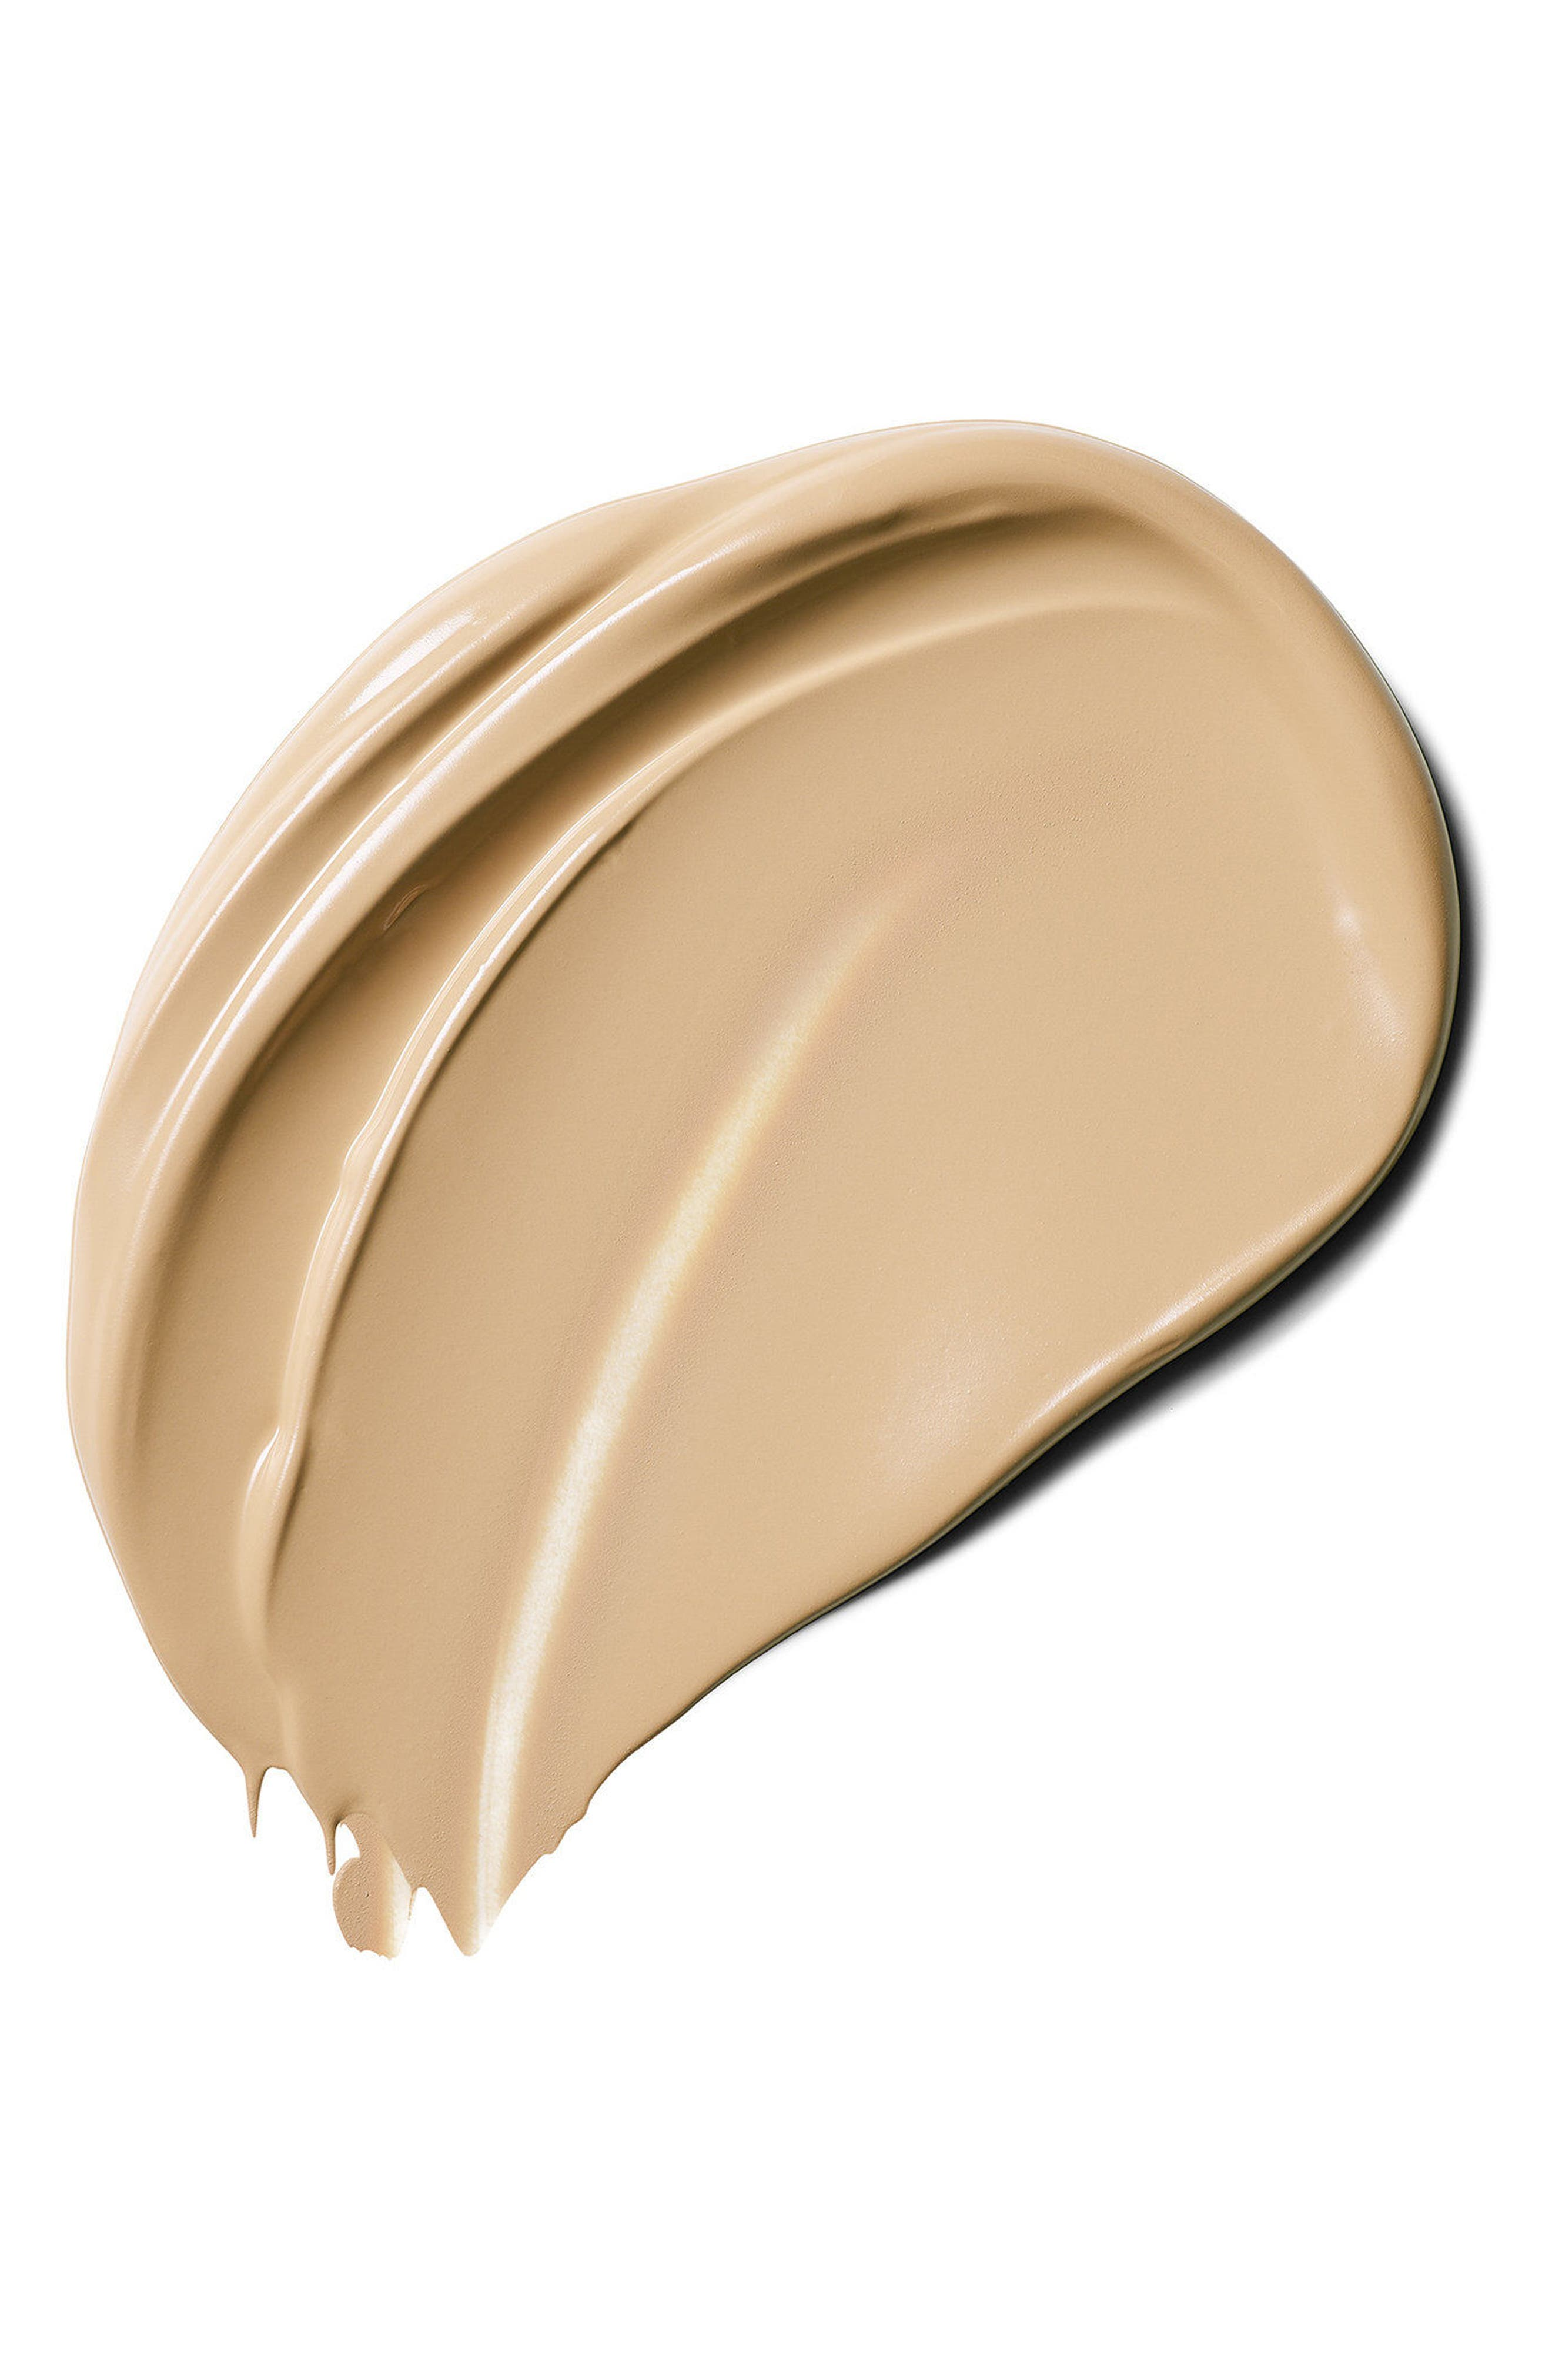 Estee Lauder Double Wear Maximum Cover Camouflage Makeup For Face And Body Spf 15 - 2N1 Desert Beige